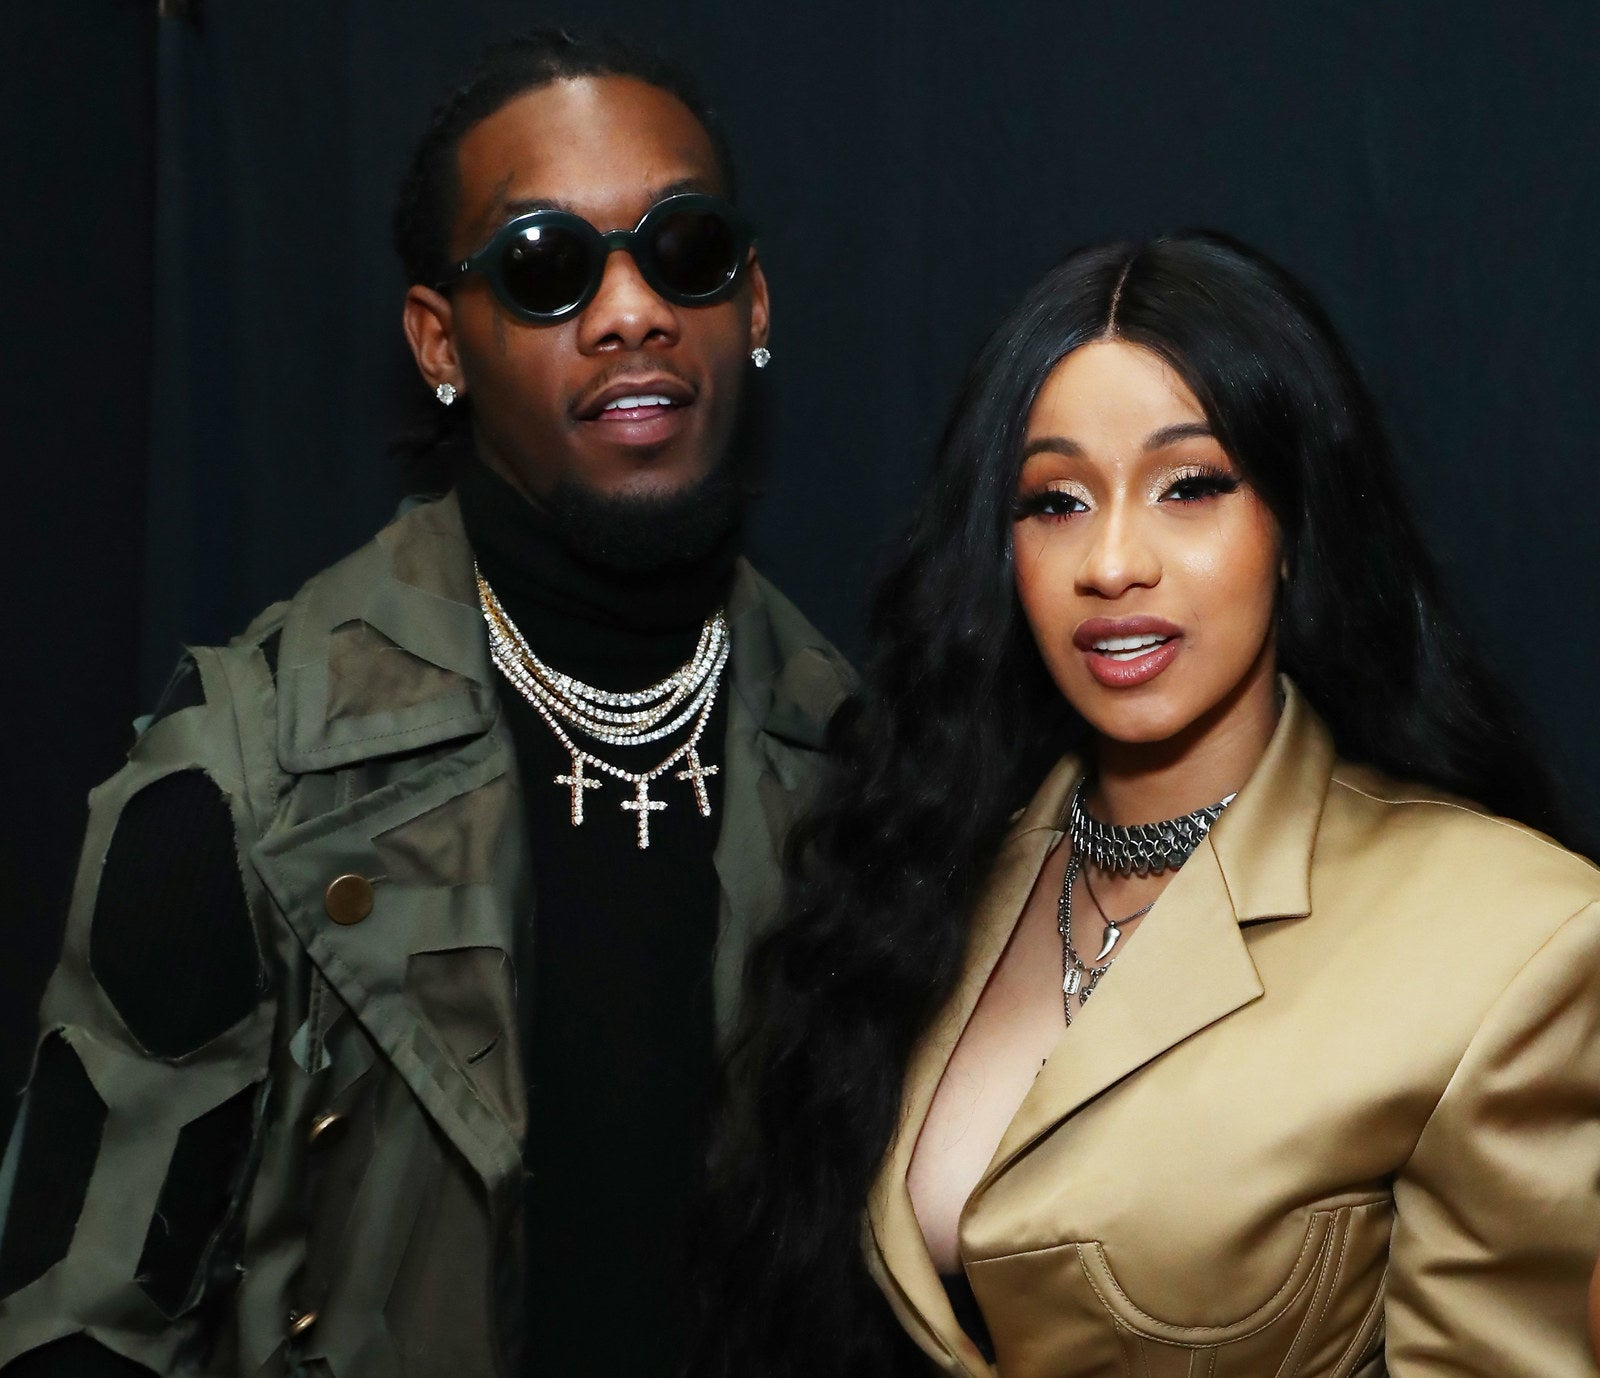 The 25-year-old Bronx native isn't afraid to speak her mind, especially when it comes to people and things she cares about, like fiancé Offset of Migos.